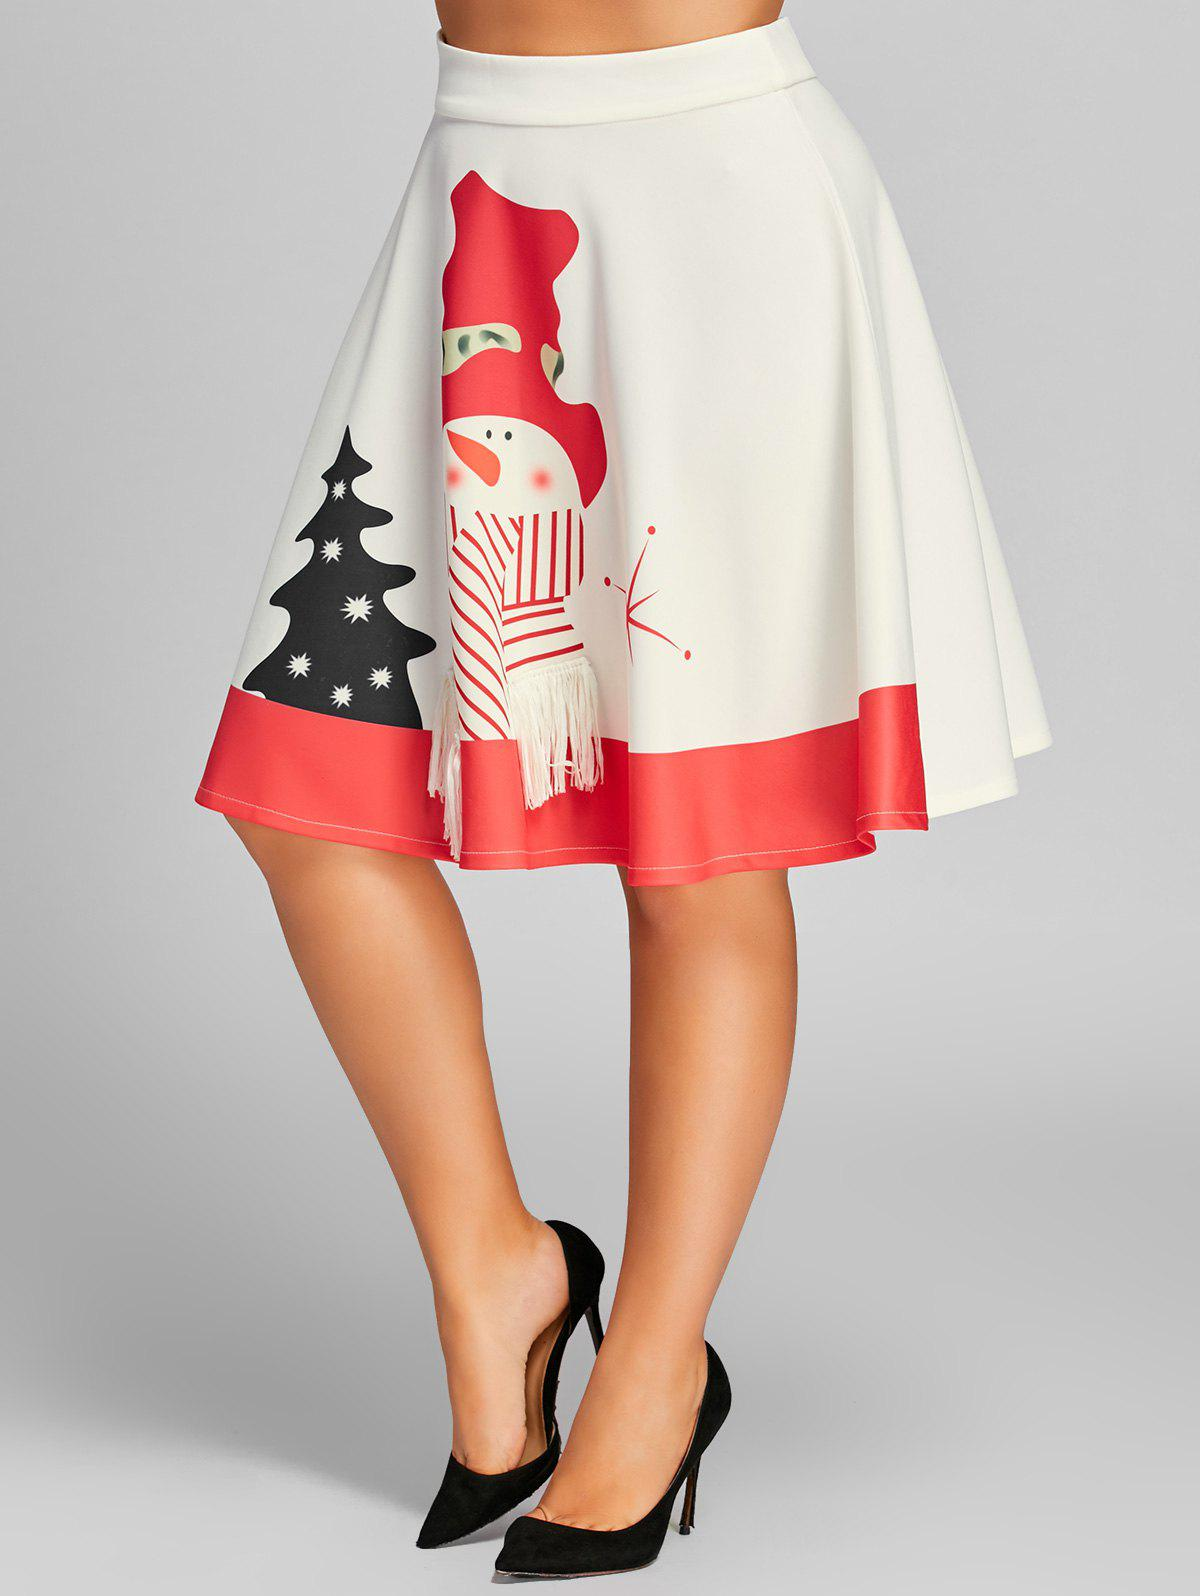 High Waisted Snowman Print Plus Size Christmas SkirtWOMEN<br><br>Size: 4XL; Color: WHITE; Material: Polyester,Spandex; Length: Knee-Length; Silhouette: A-Line; Pattern Type: Print; Season: Fall,Spring; Weight: 0.3500kg; Package Contents: 1 x Skirt;